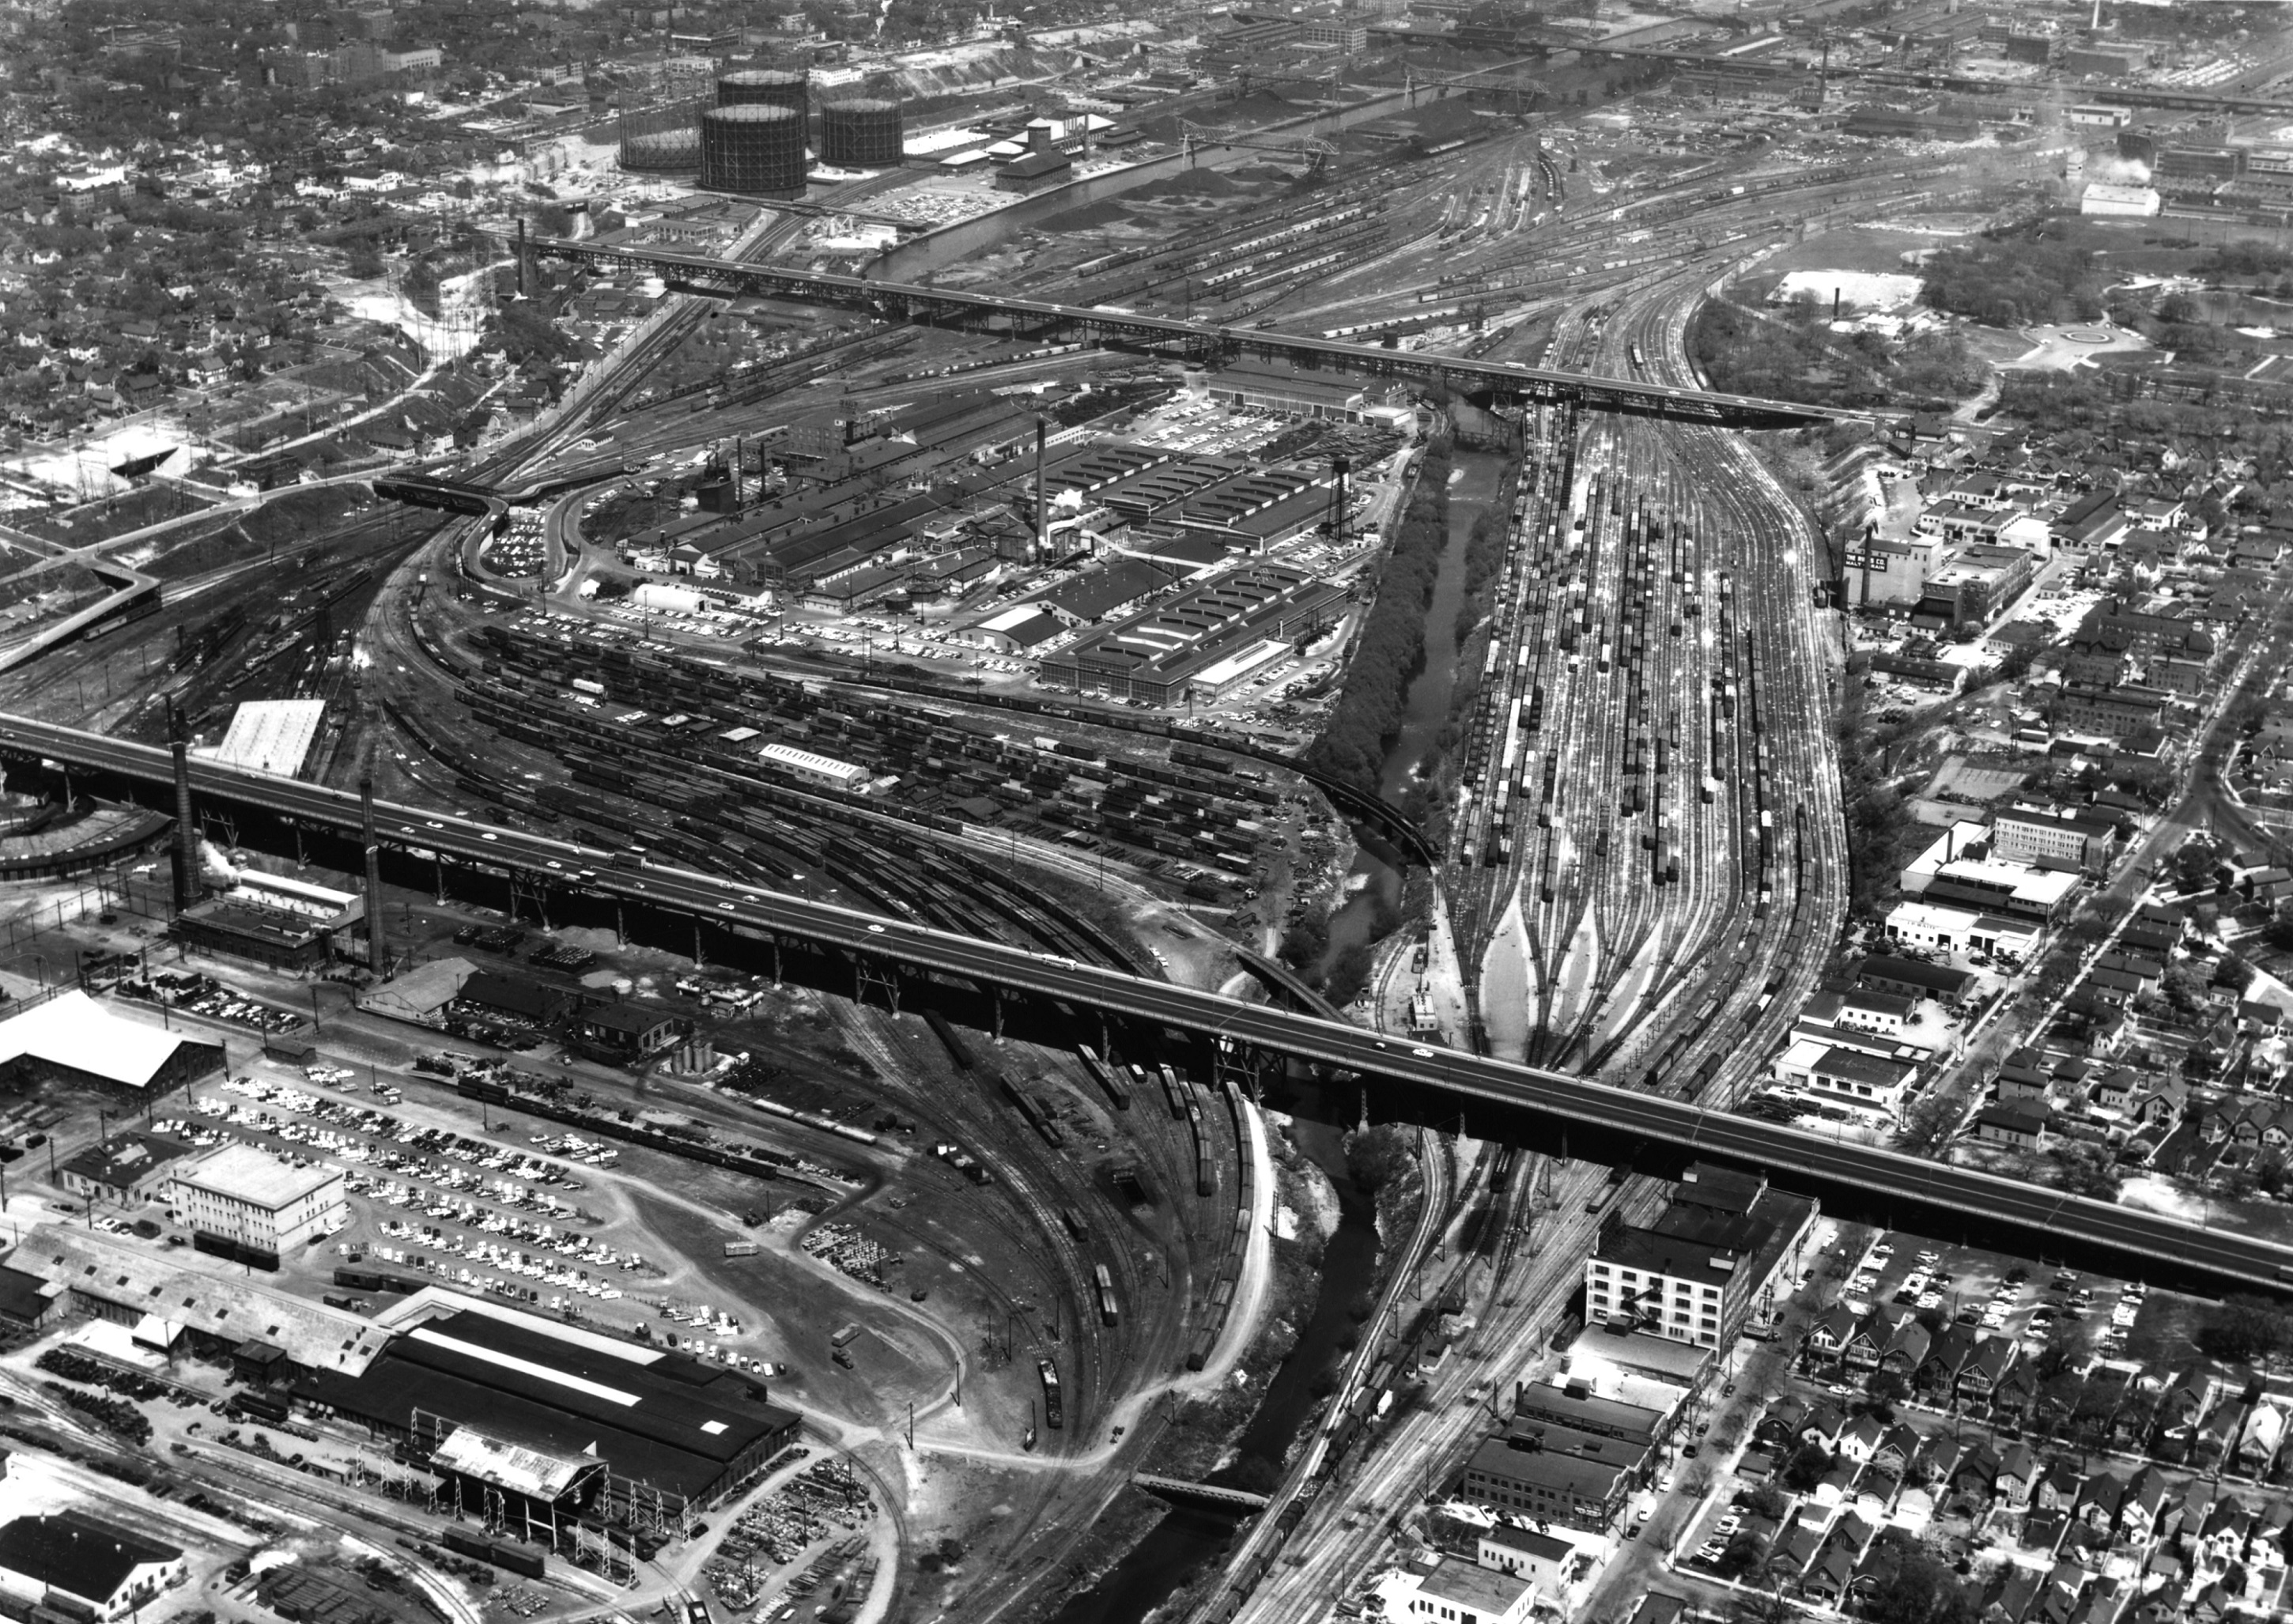 Menomonee Valley in 1958, looking east, when Milwaukee's industrial economy still hummed along.